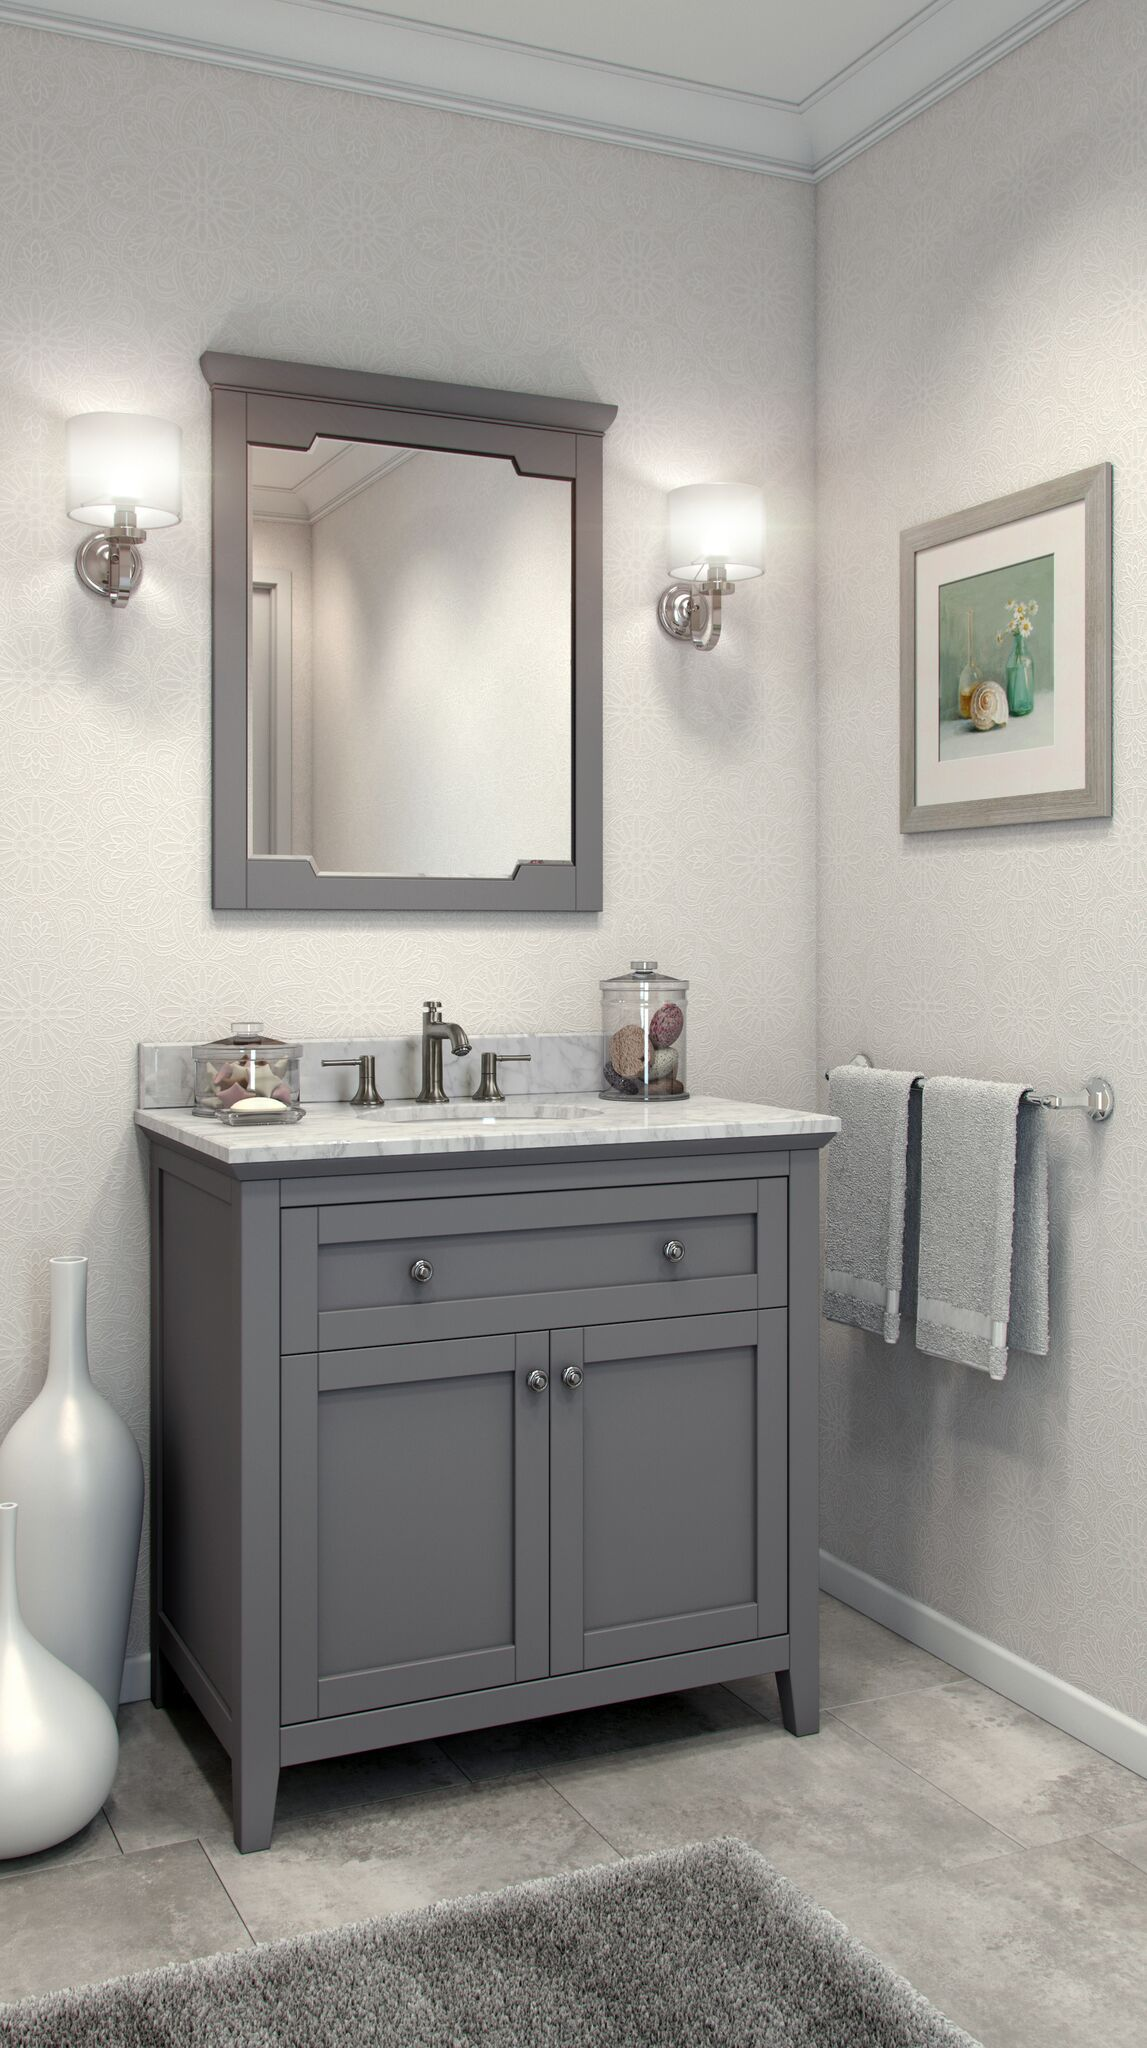 cabinet unit of double bathroom cabinets full white top sink vanity furniture inch corner size deep with vanities small sets grey tags